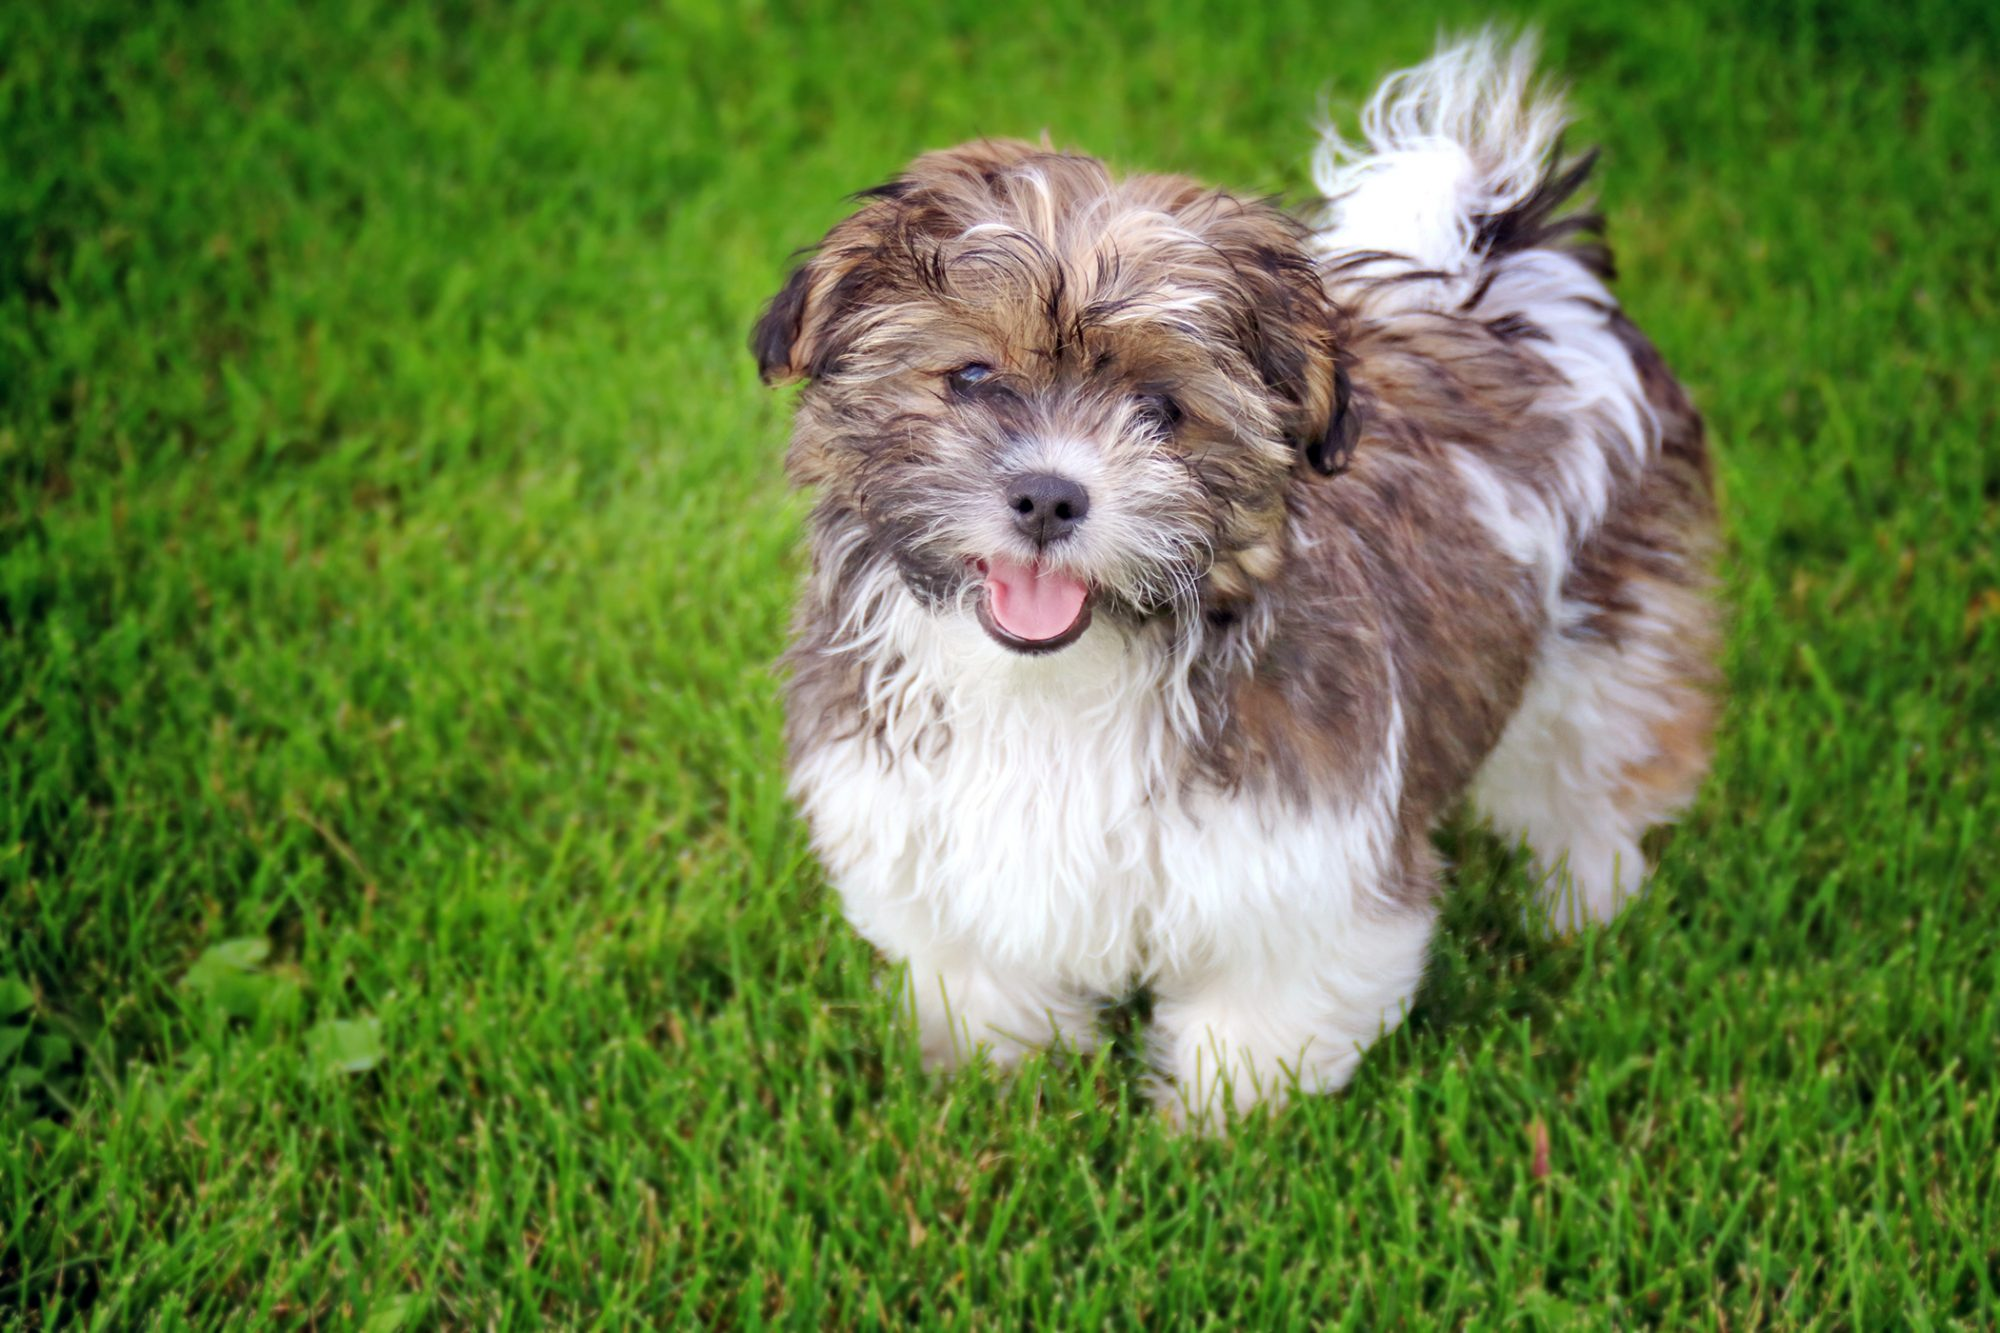 shichon dog standing outside in grass looking at the camera with their tongue out